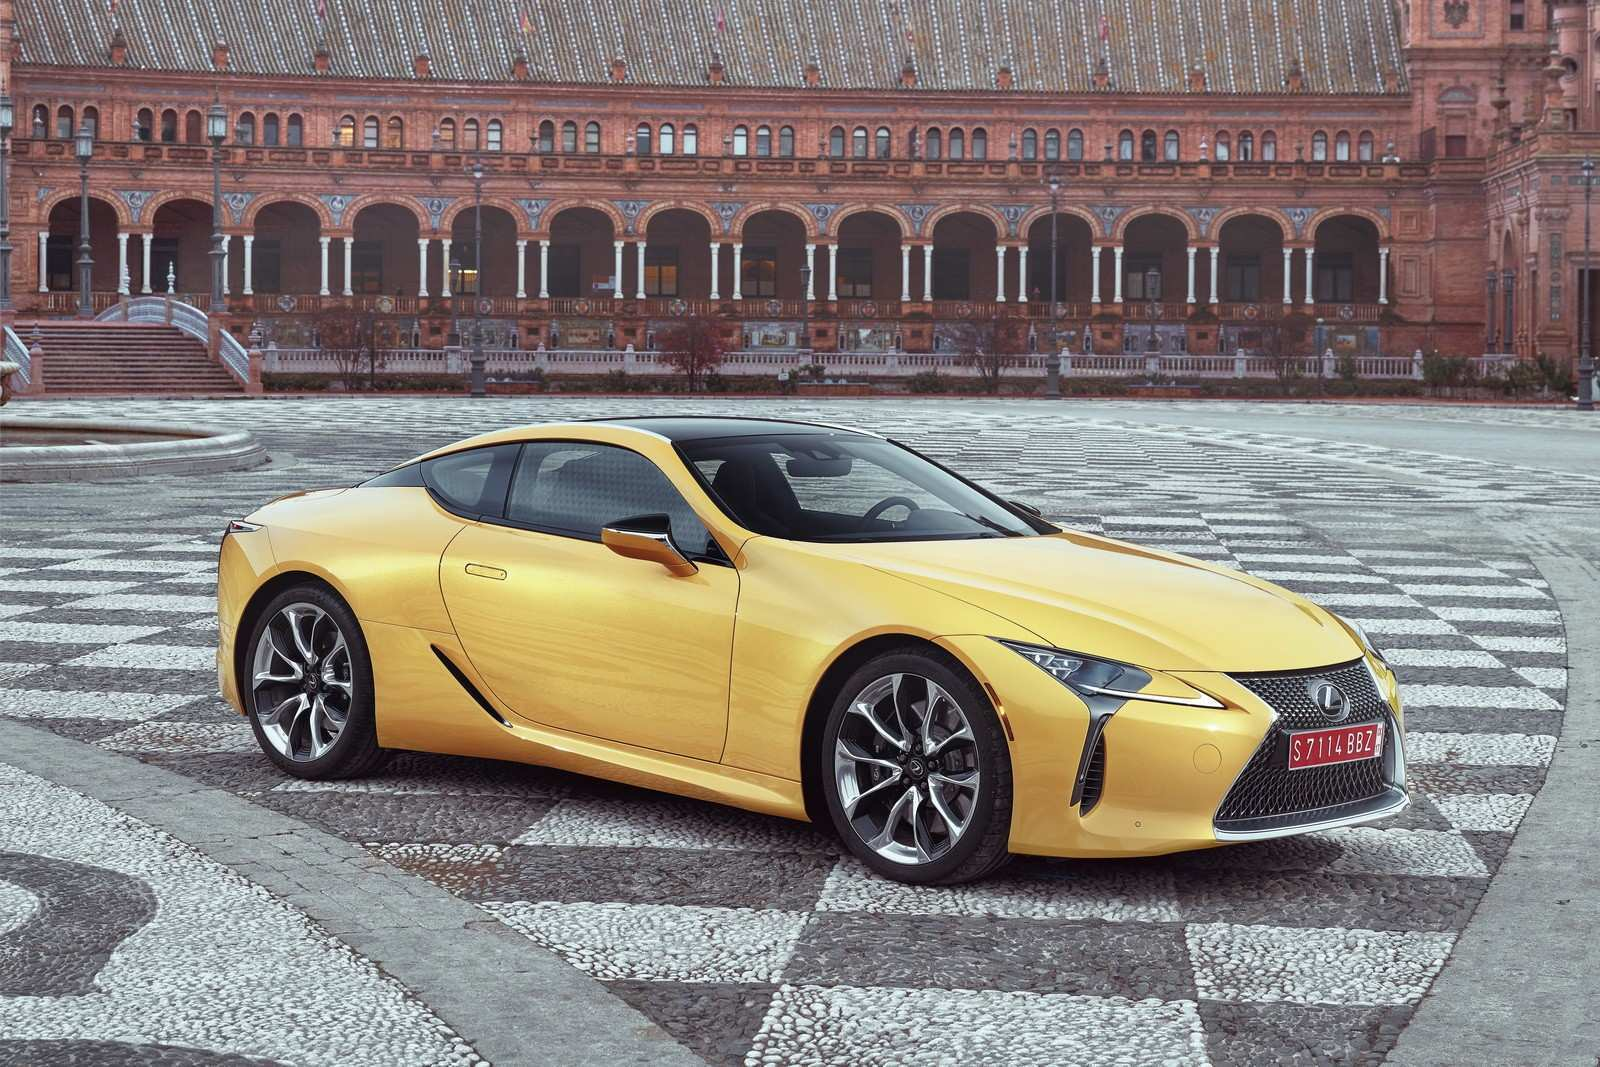 15 All New 2019 Lexus Lc F Picture by 2019 Lexus Lc F